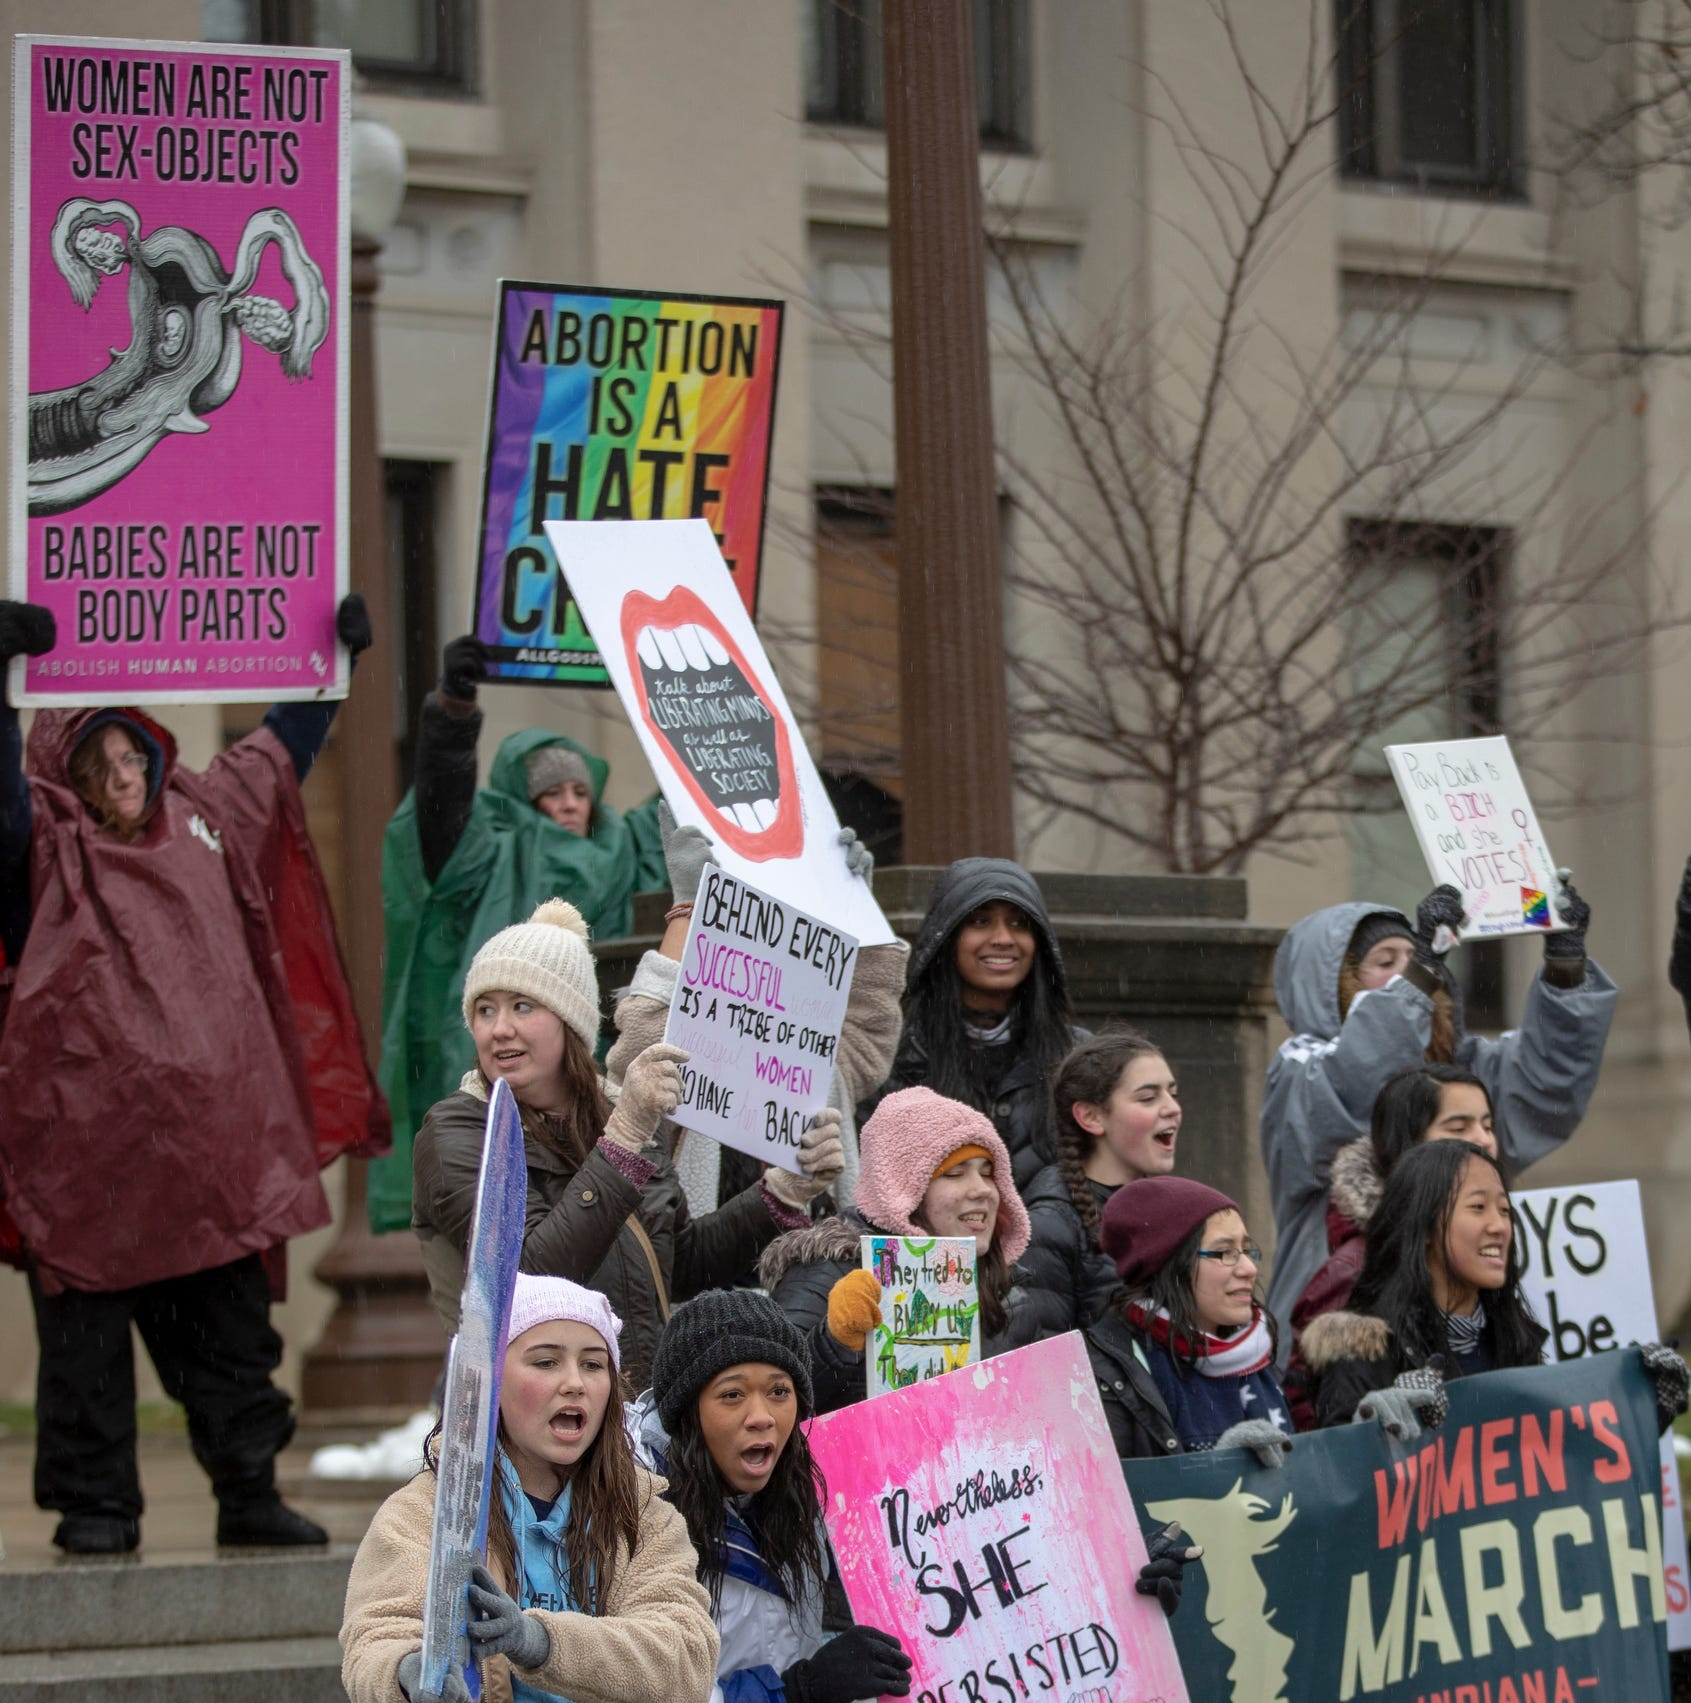 ACLU sues Indiana over near-ban on most common second-trimester abortion procedure